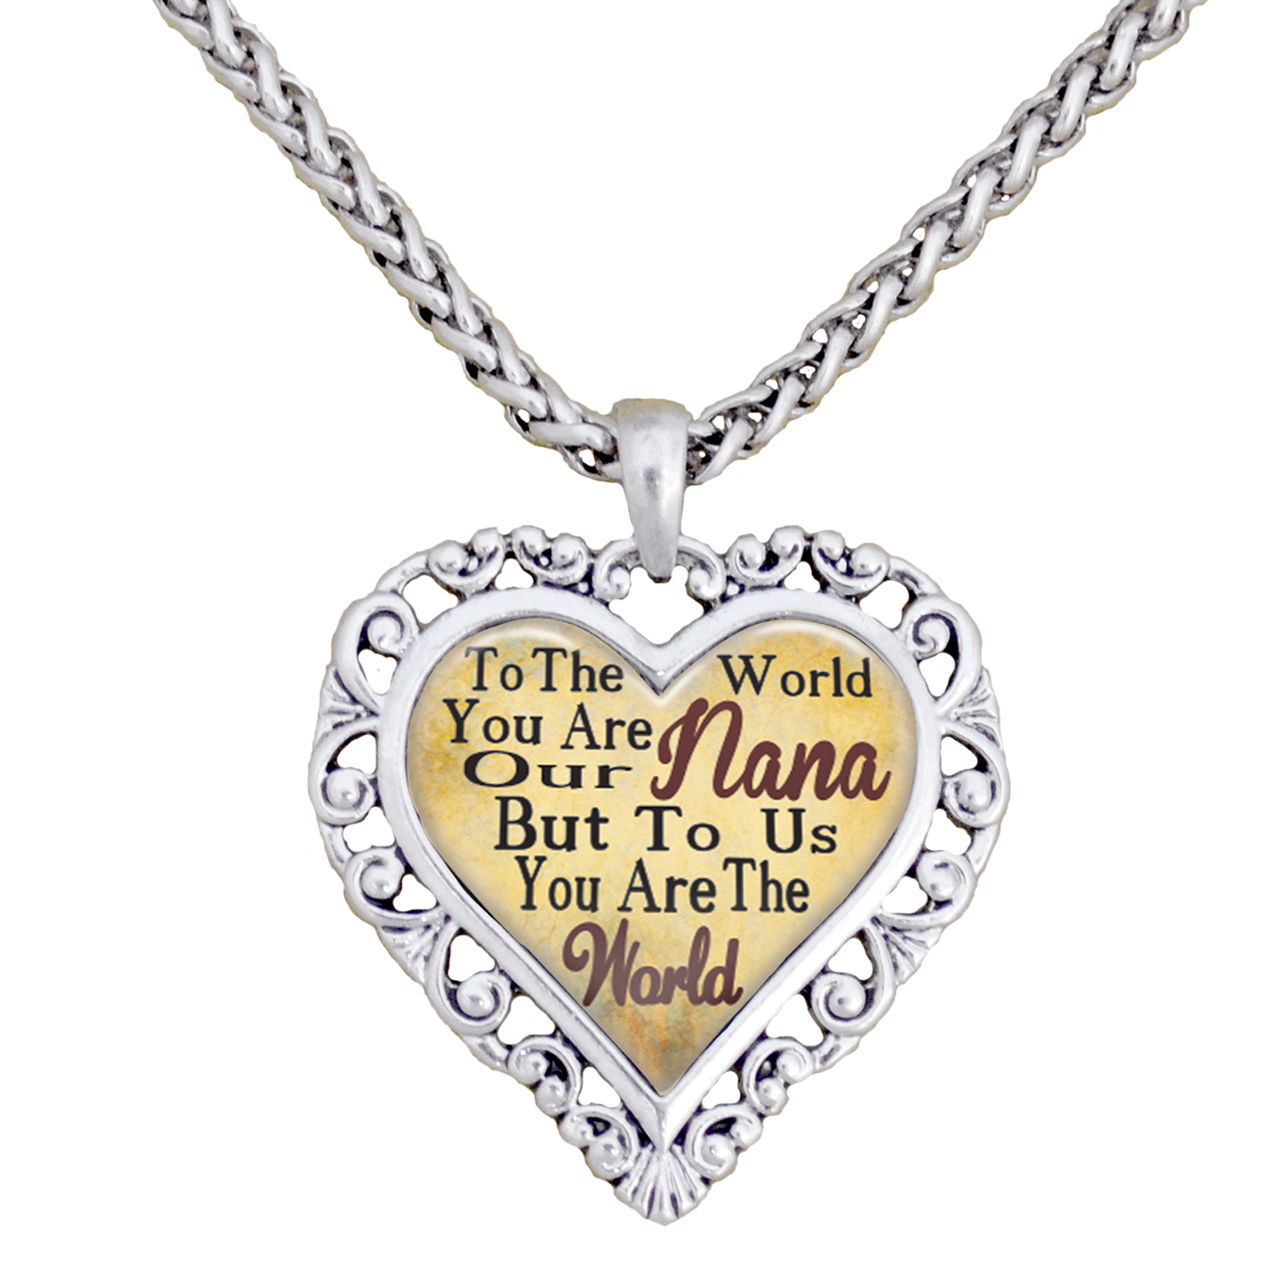 Nana You Are The World To Us Silver Chain Necklace Heart Jewelry